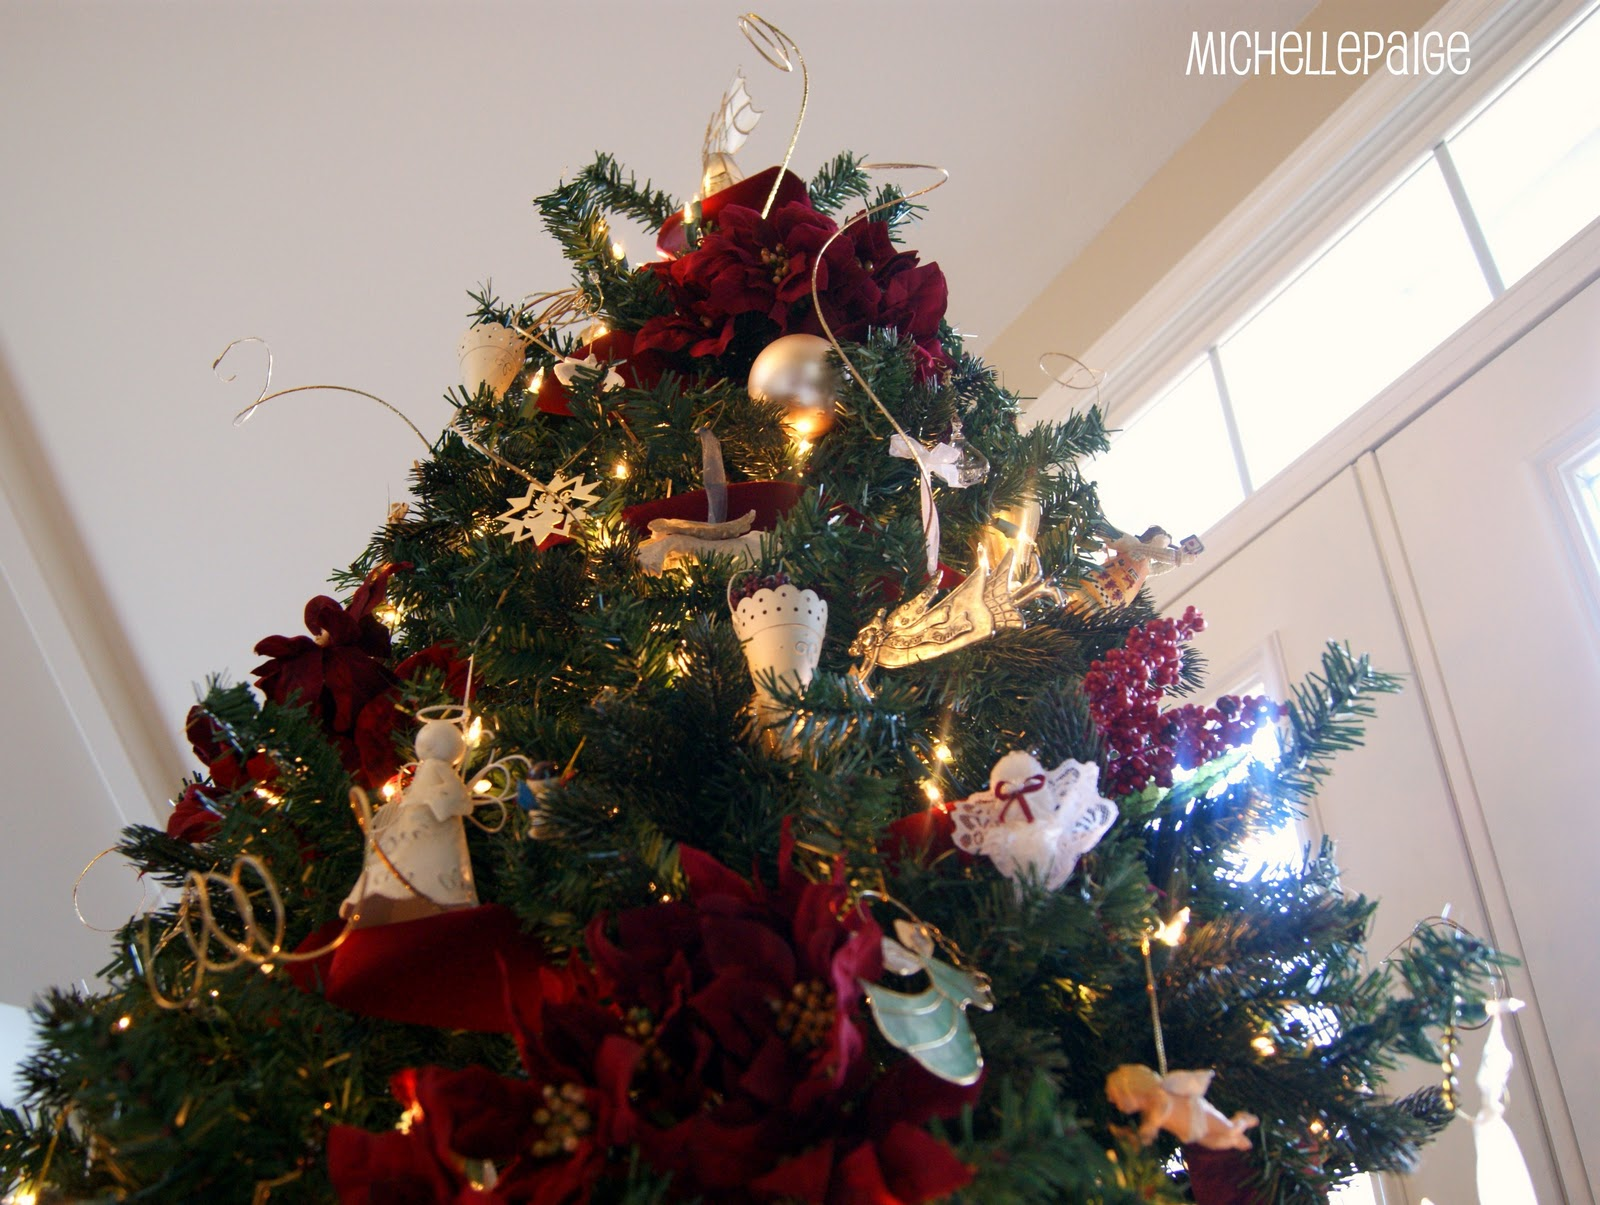 Michelle paige blogs decorating artificial trees for Artificial cranberries for decoration